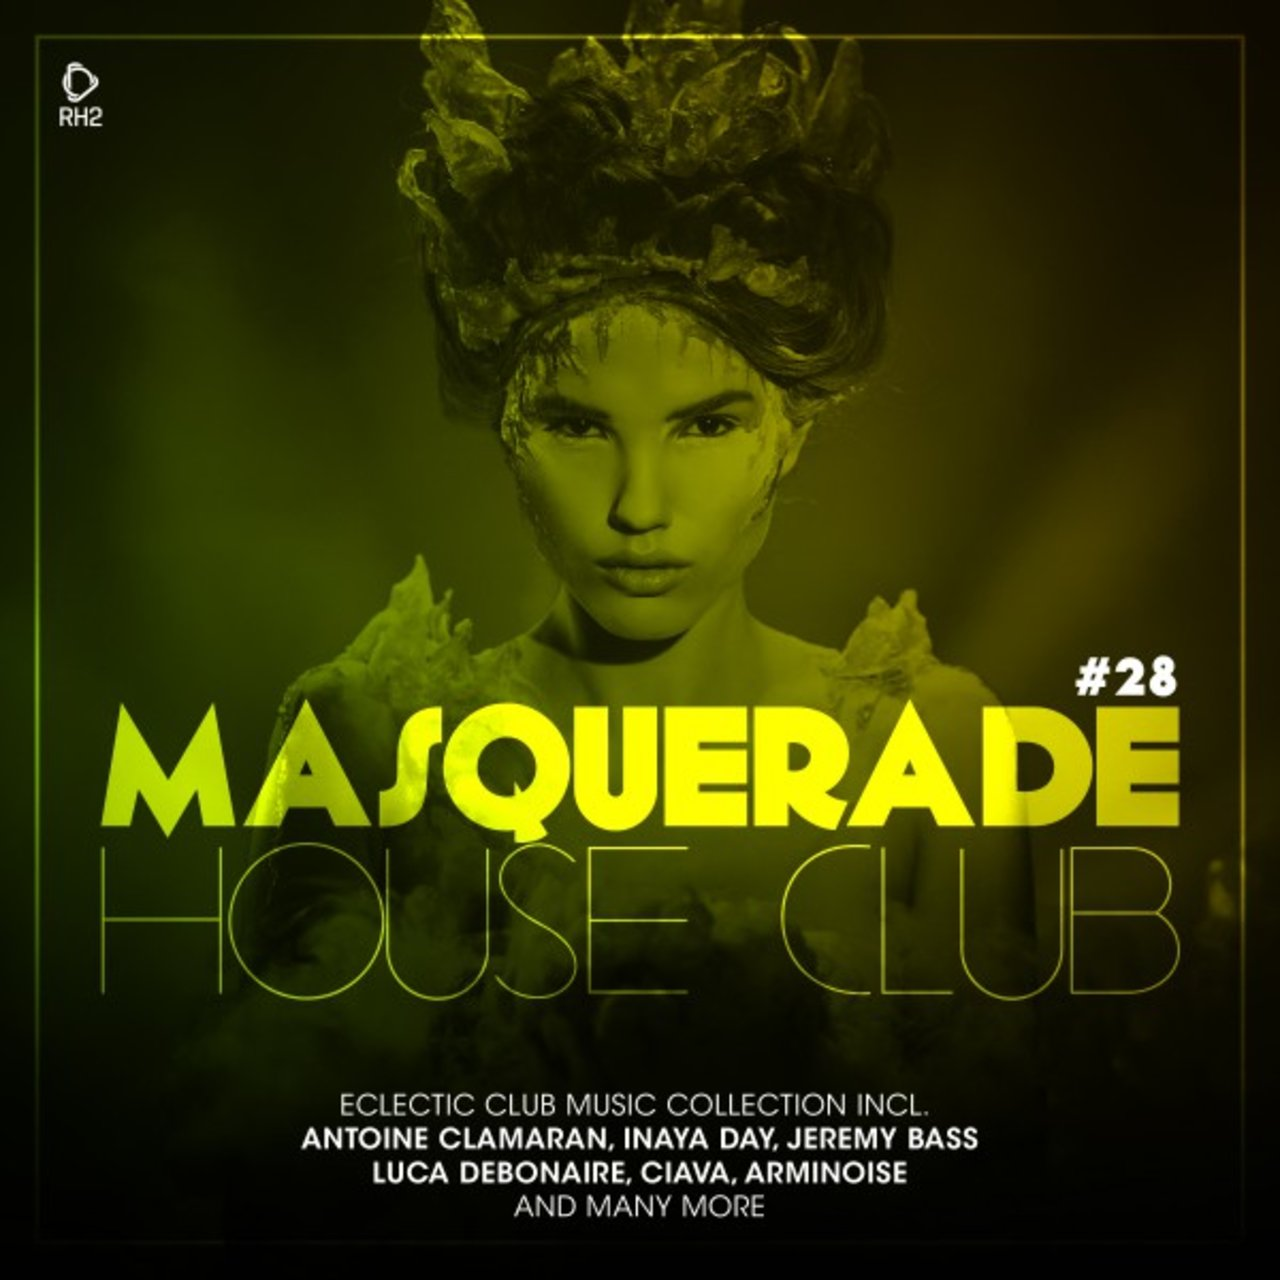 Masquerade House Club, Vol. 28